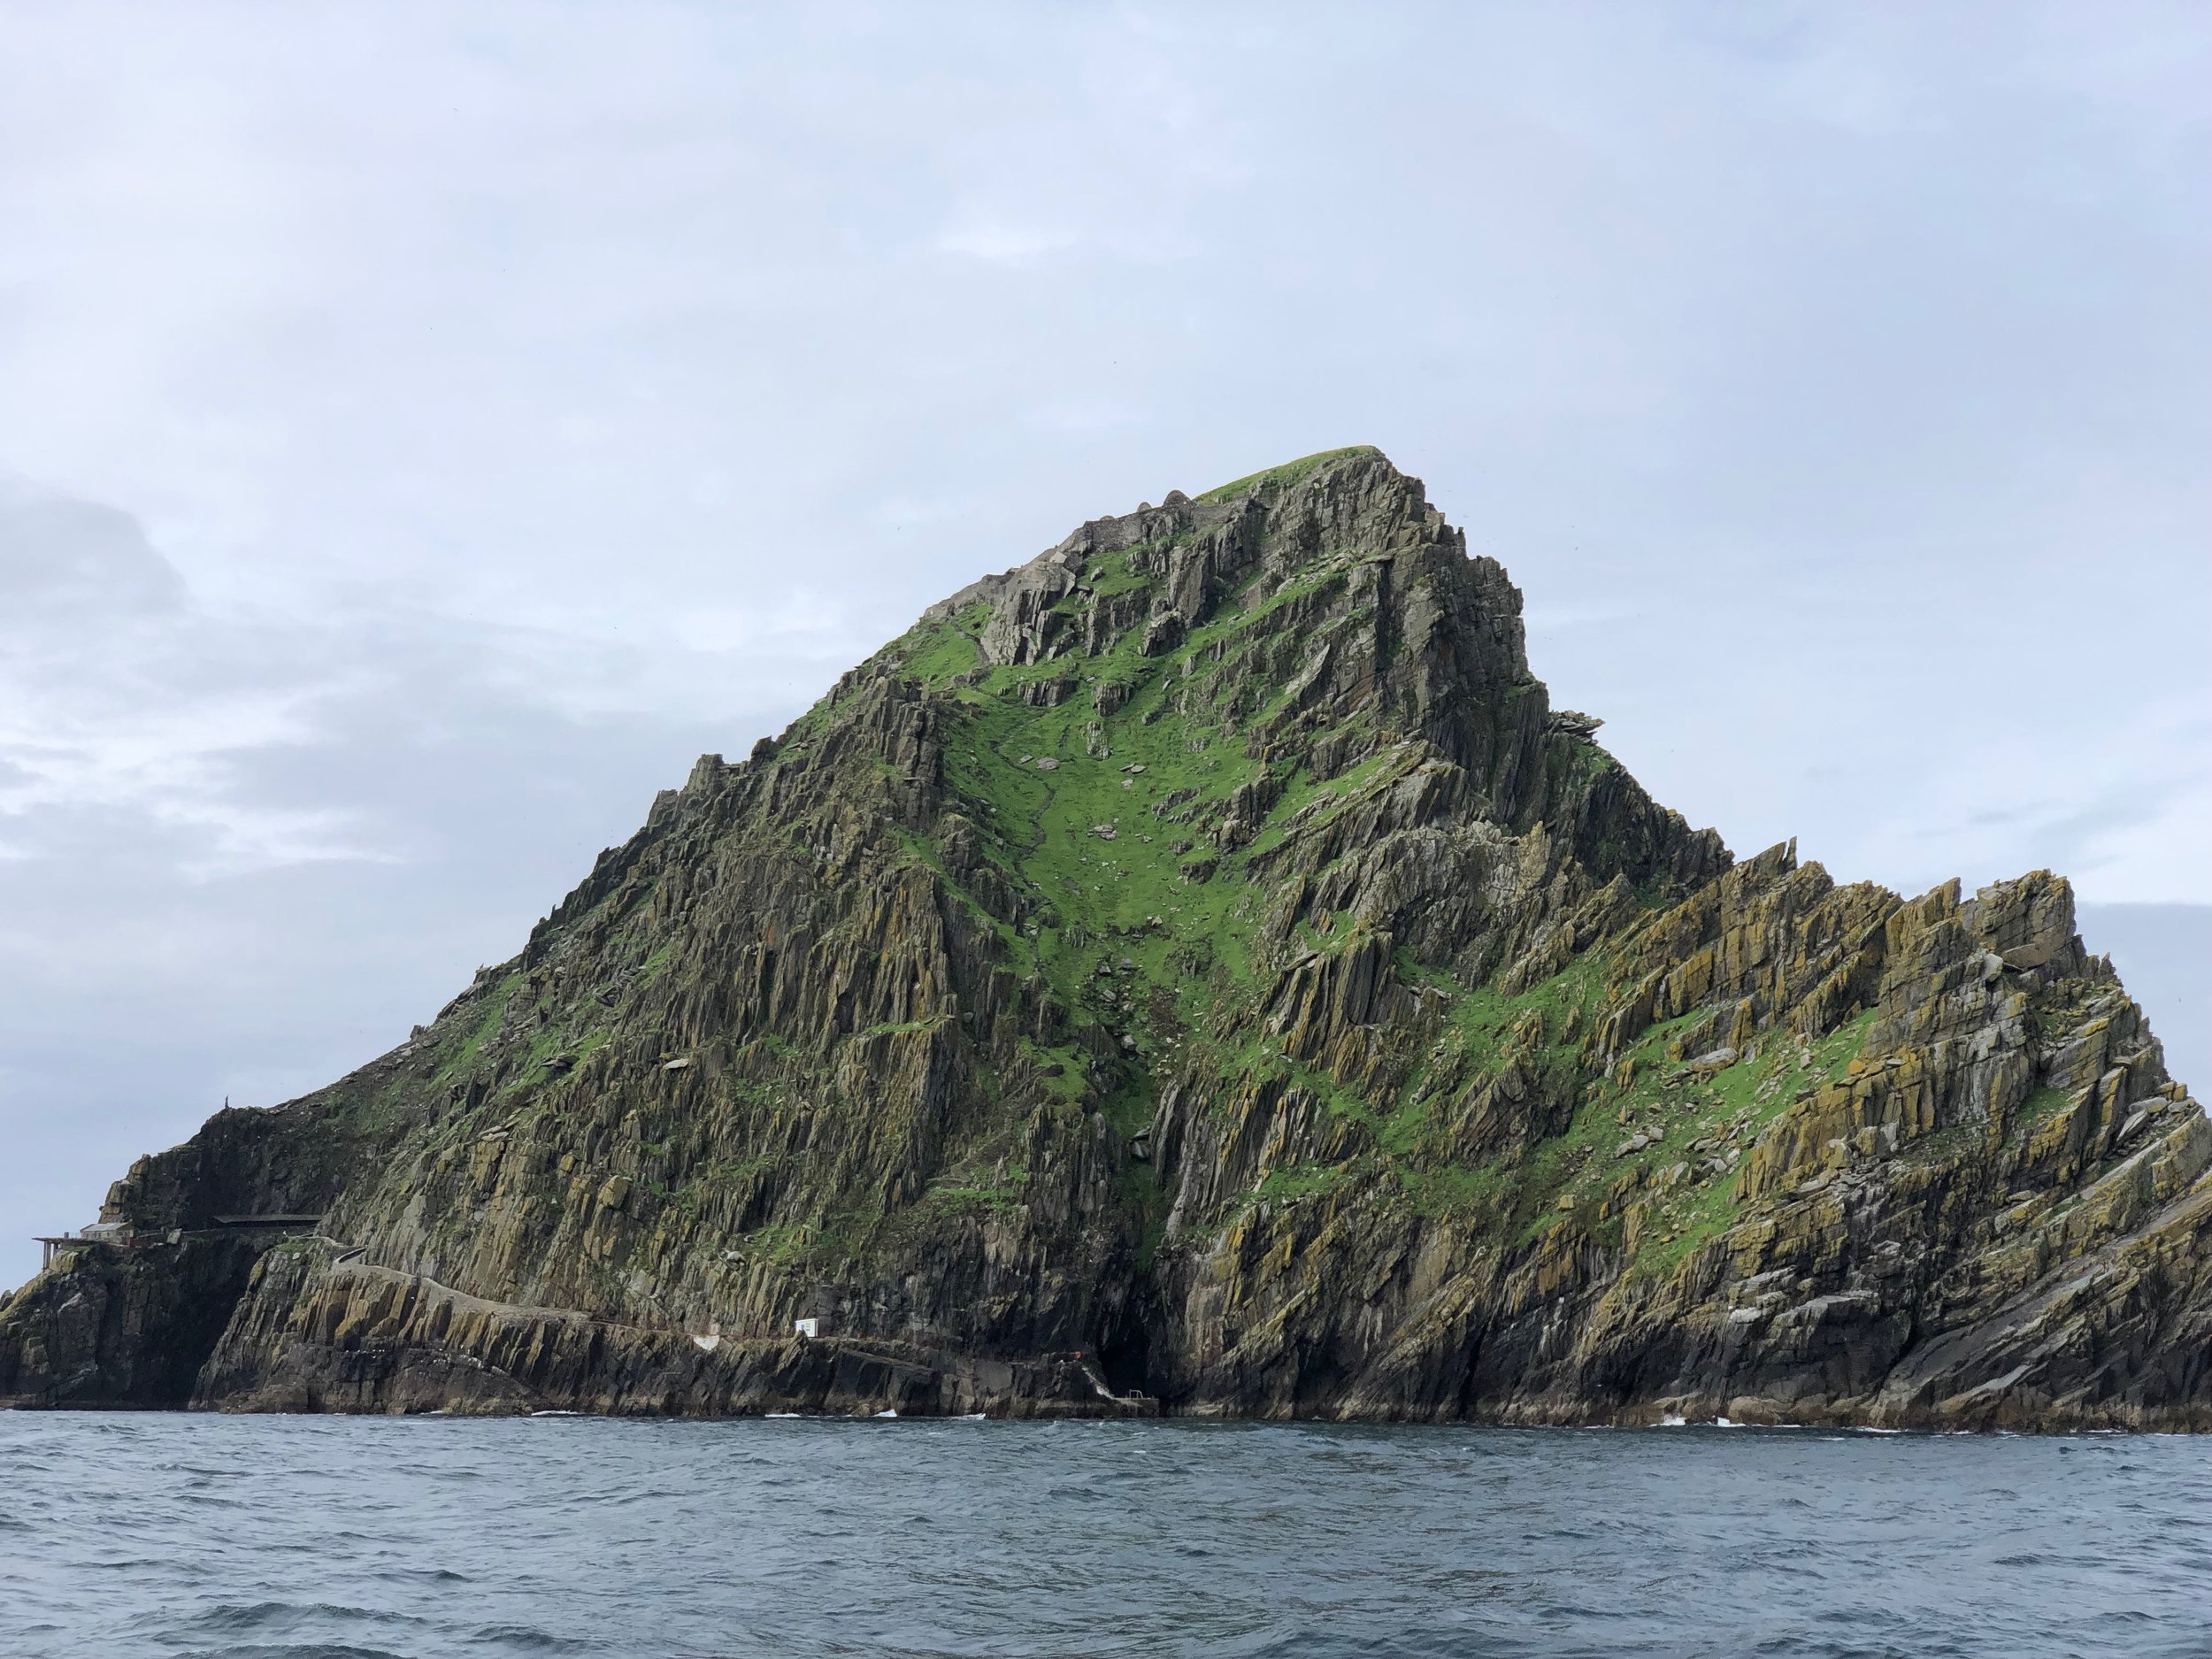 Skellig Michael is rugged rock of an island about 20 miles off the coast of Ireland. Around 300-400 AD monks first landed on the island and built a monastery, the ruins of which still exist today. The two small bumps to the left of the tallest point are beehive structures that the monks built.  Scenes from two Star Wars Movies were also filmed on the Island.